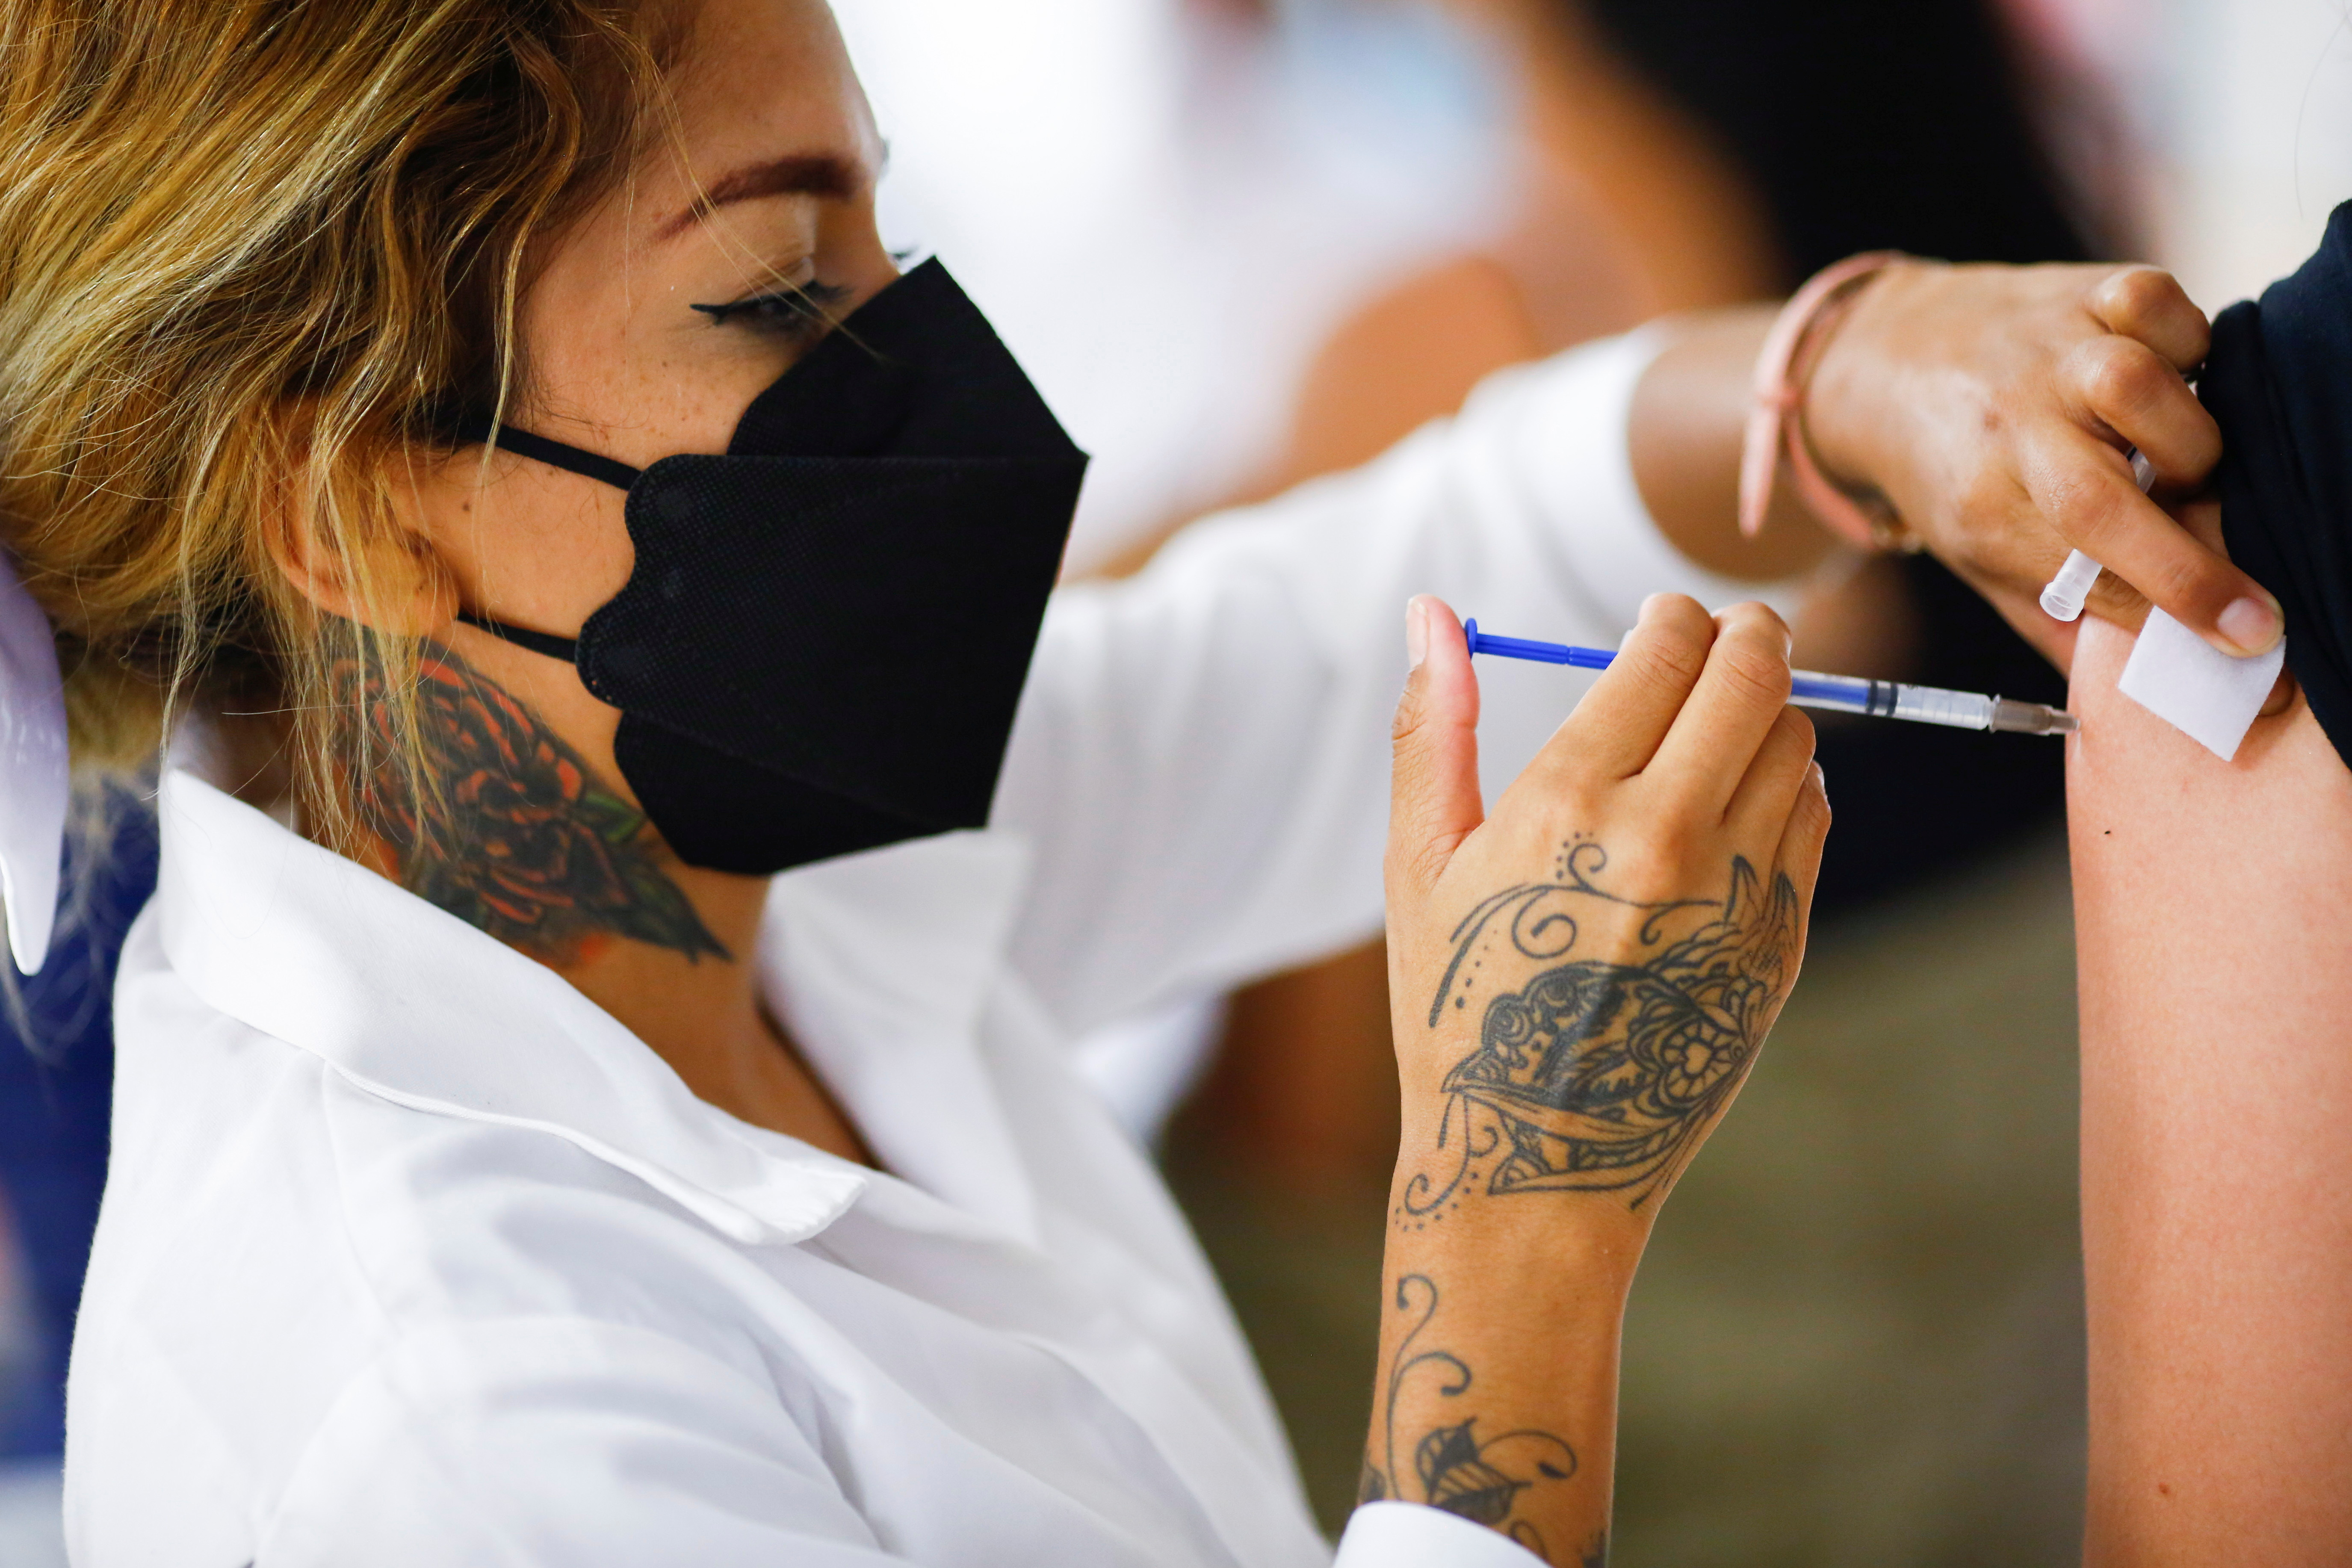 Ely Herrera, a health worker, injects a dose of the Pfizer-BioNTech coronavirus disease (COVID-19) vaccine during a mass vaccination program at Lear Corporation in Ciudad Juarez, Mexico August 24, 2021. REUTERS/Jose Luis Gonzalez